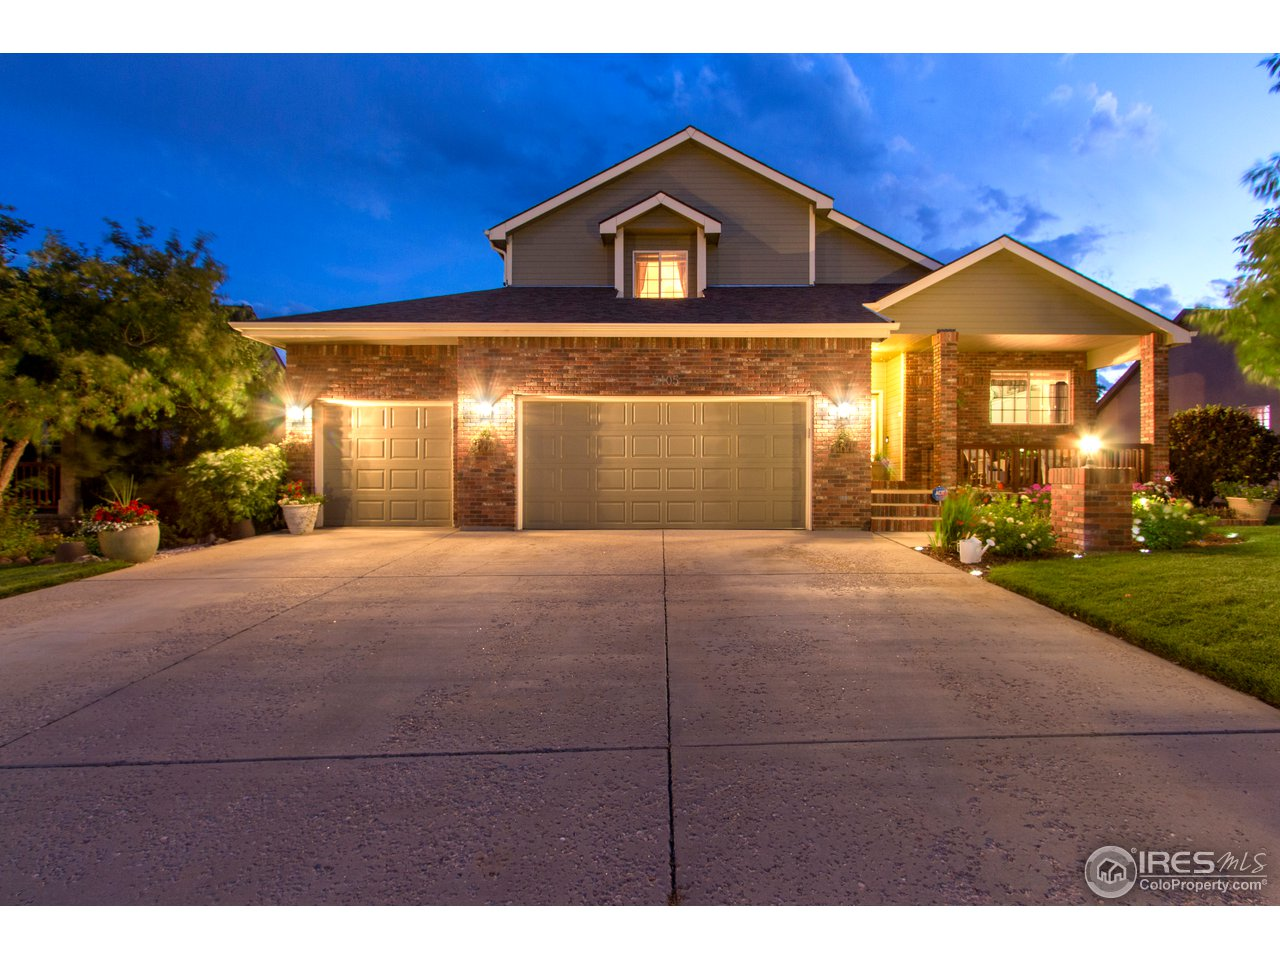 3105 54th Ave, Greeley CO 80634